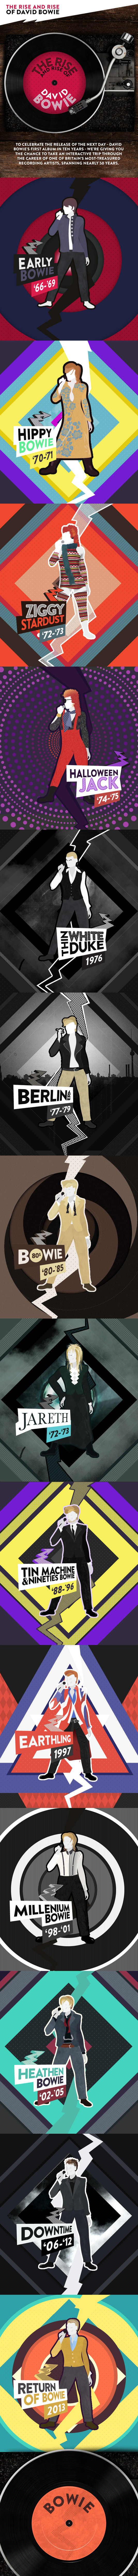 David Bowie Infographic style personas through the years different periods ziggy halloween jack berlin return of bowie cartoon